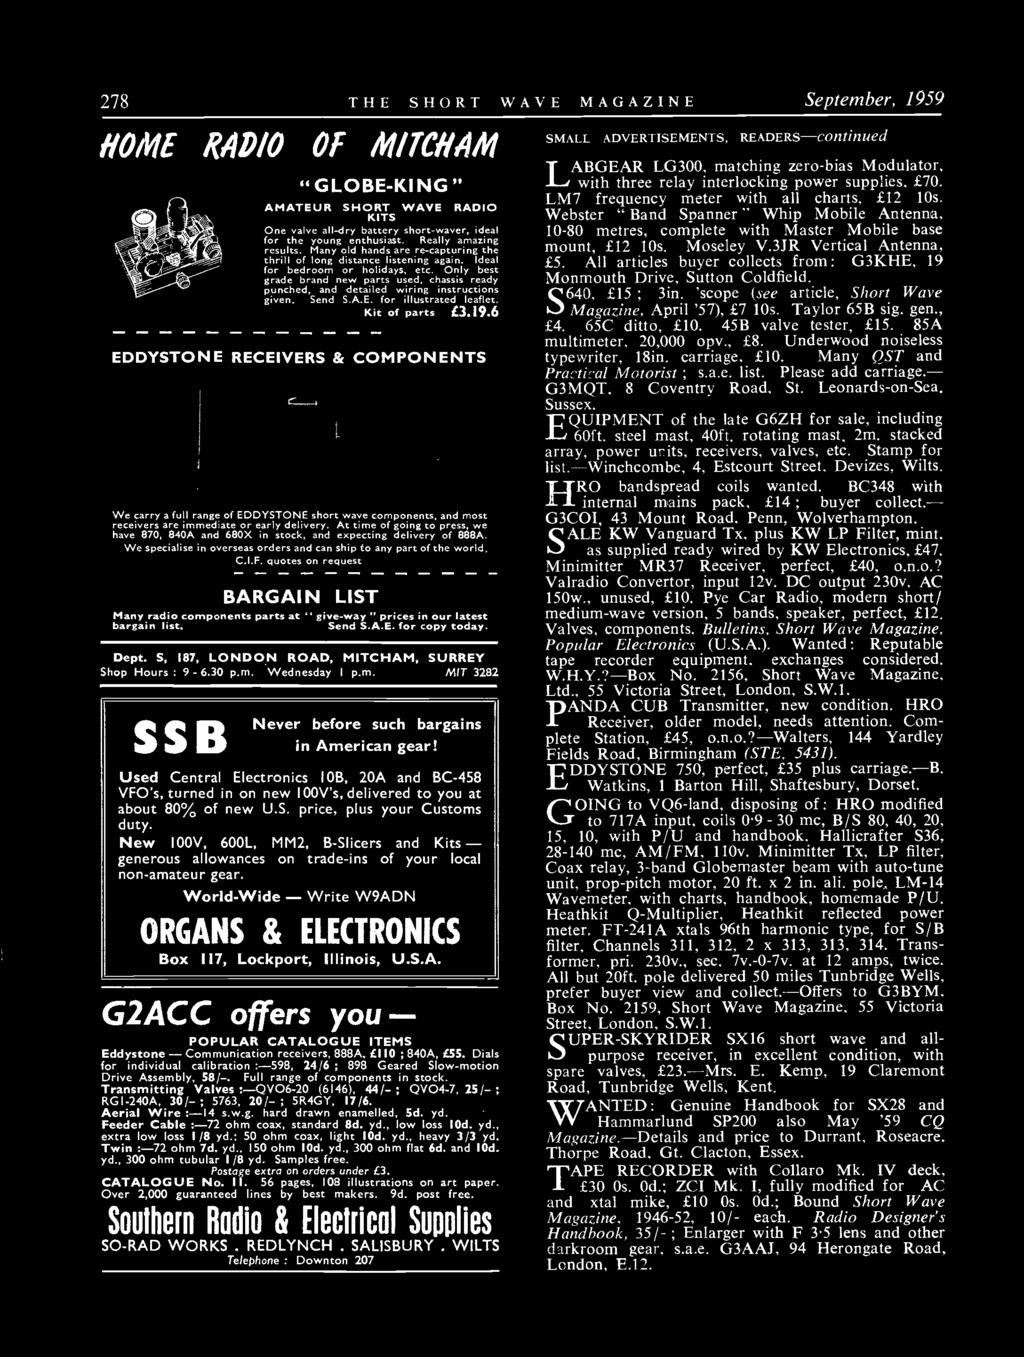 7 1 Short Wave Vol Xvii September Number For The Radio Amateur Builder Audio Amplifier6 Simple Circuits Only Best Grade Brand New Parts Used Chassis Ready Punched And Detailed Wiring Instructions